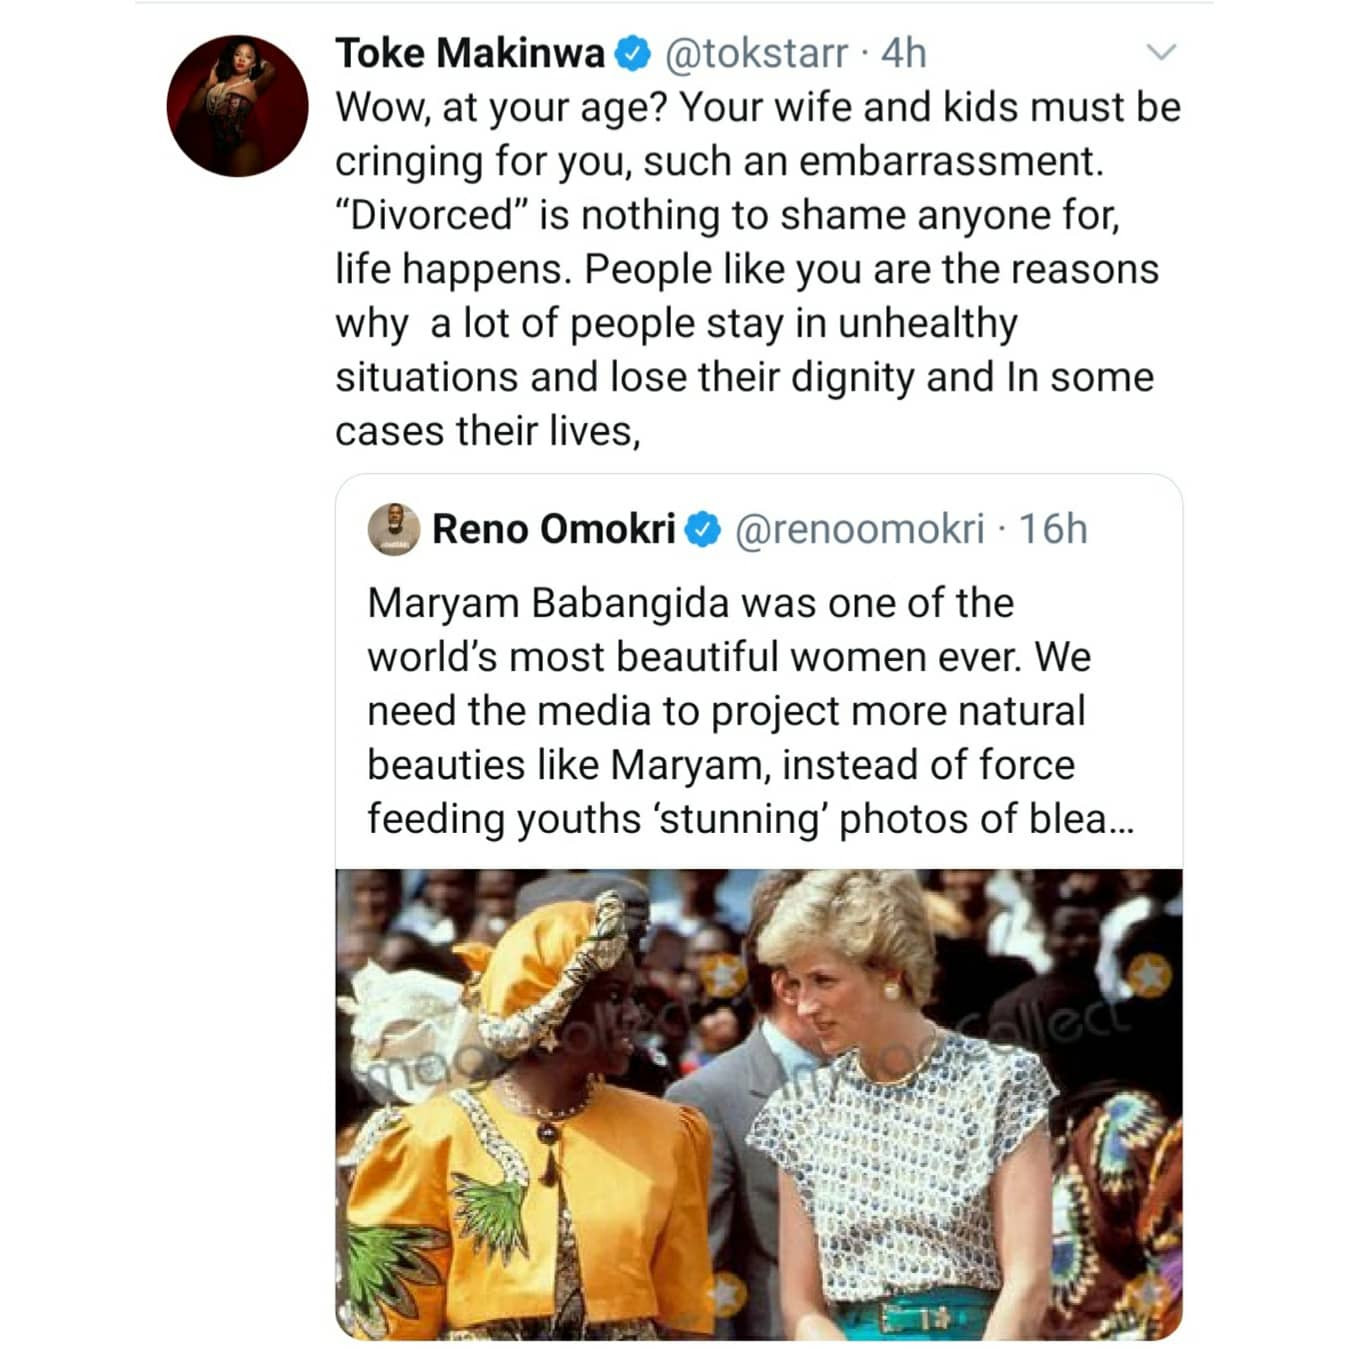 Makinwa's tweet